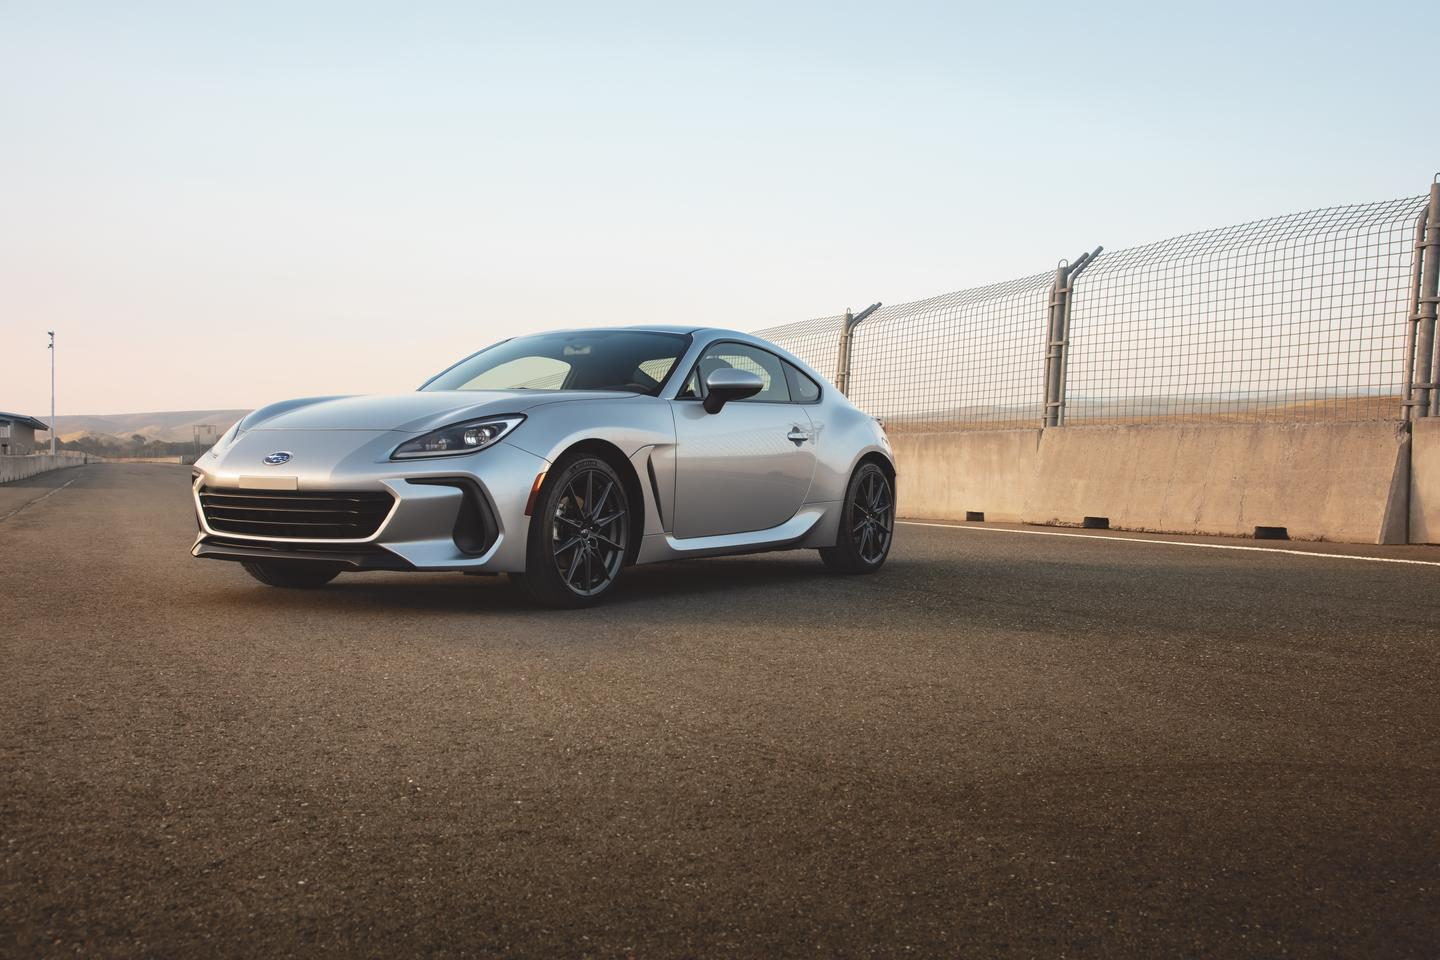 Continuing with the past, the 2022 Subaru BRZ will be offered in both Premium and Limited trim levels, though we expect that special editions will be a regular event as well